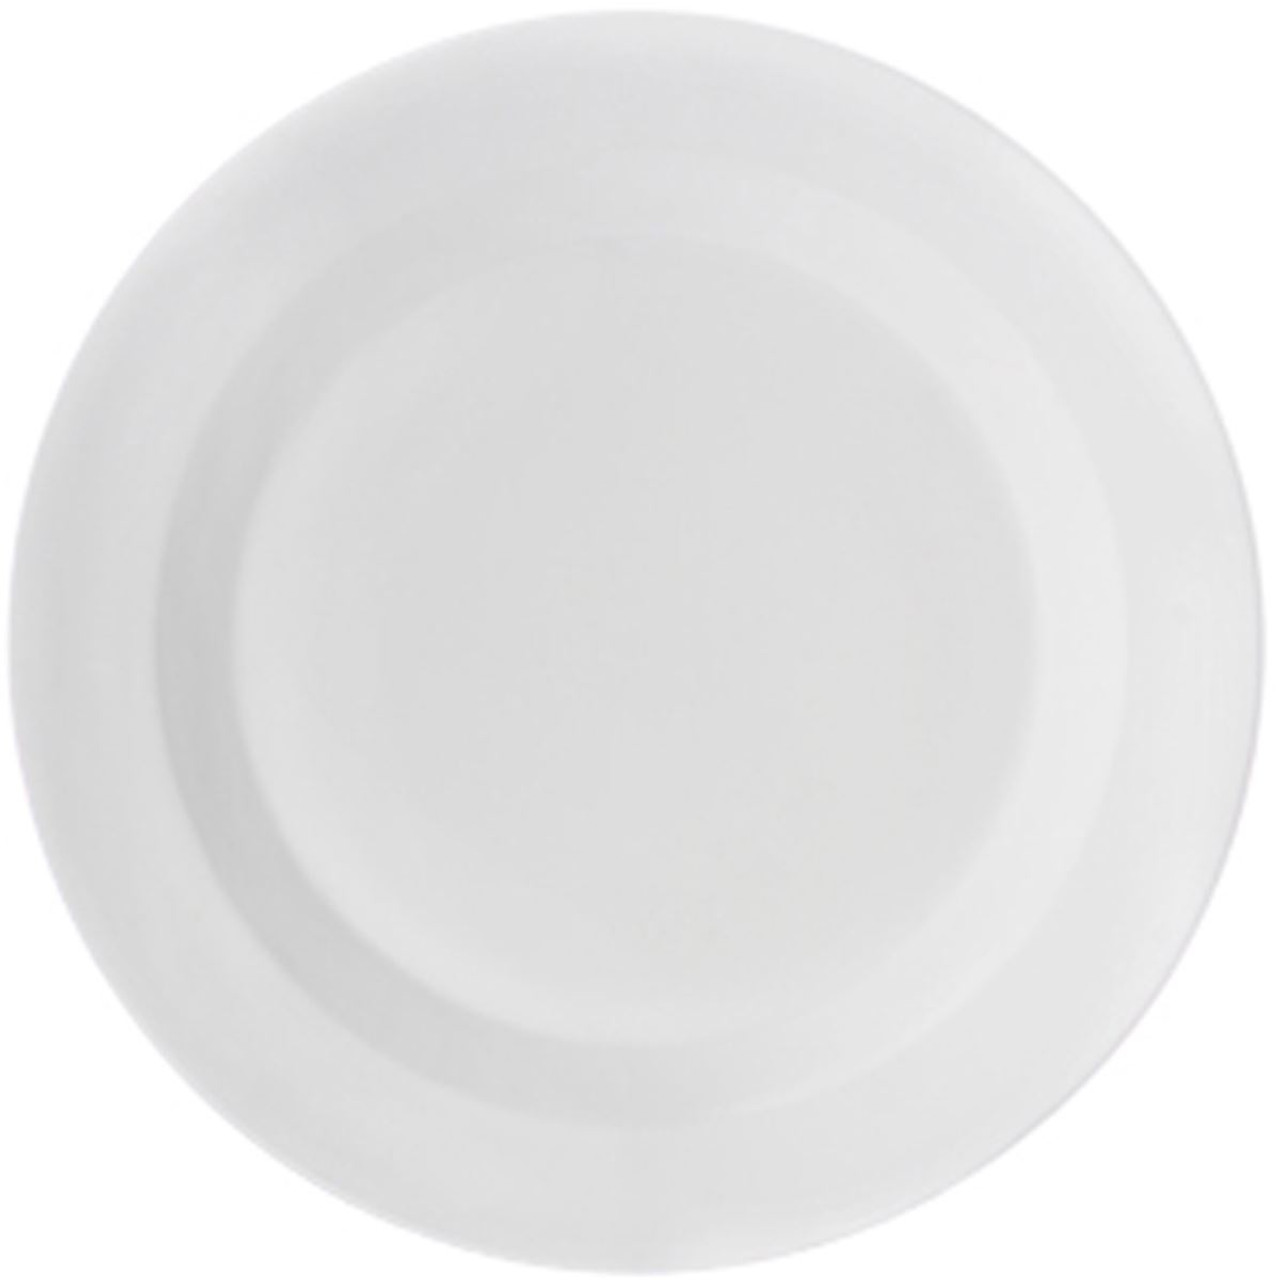 Denby James Martin Everyday Salad Plate